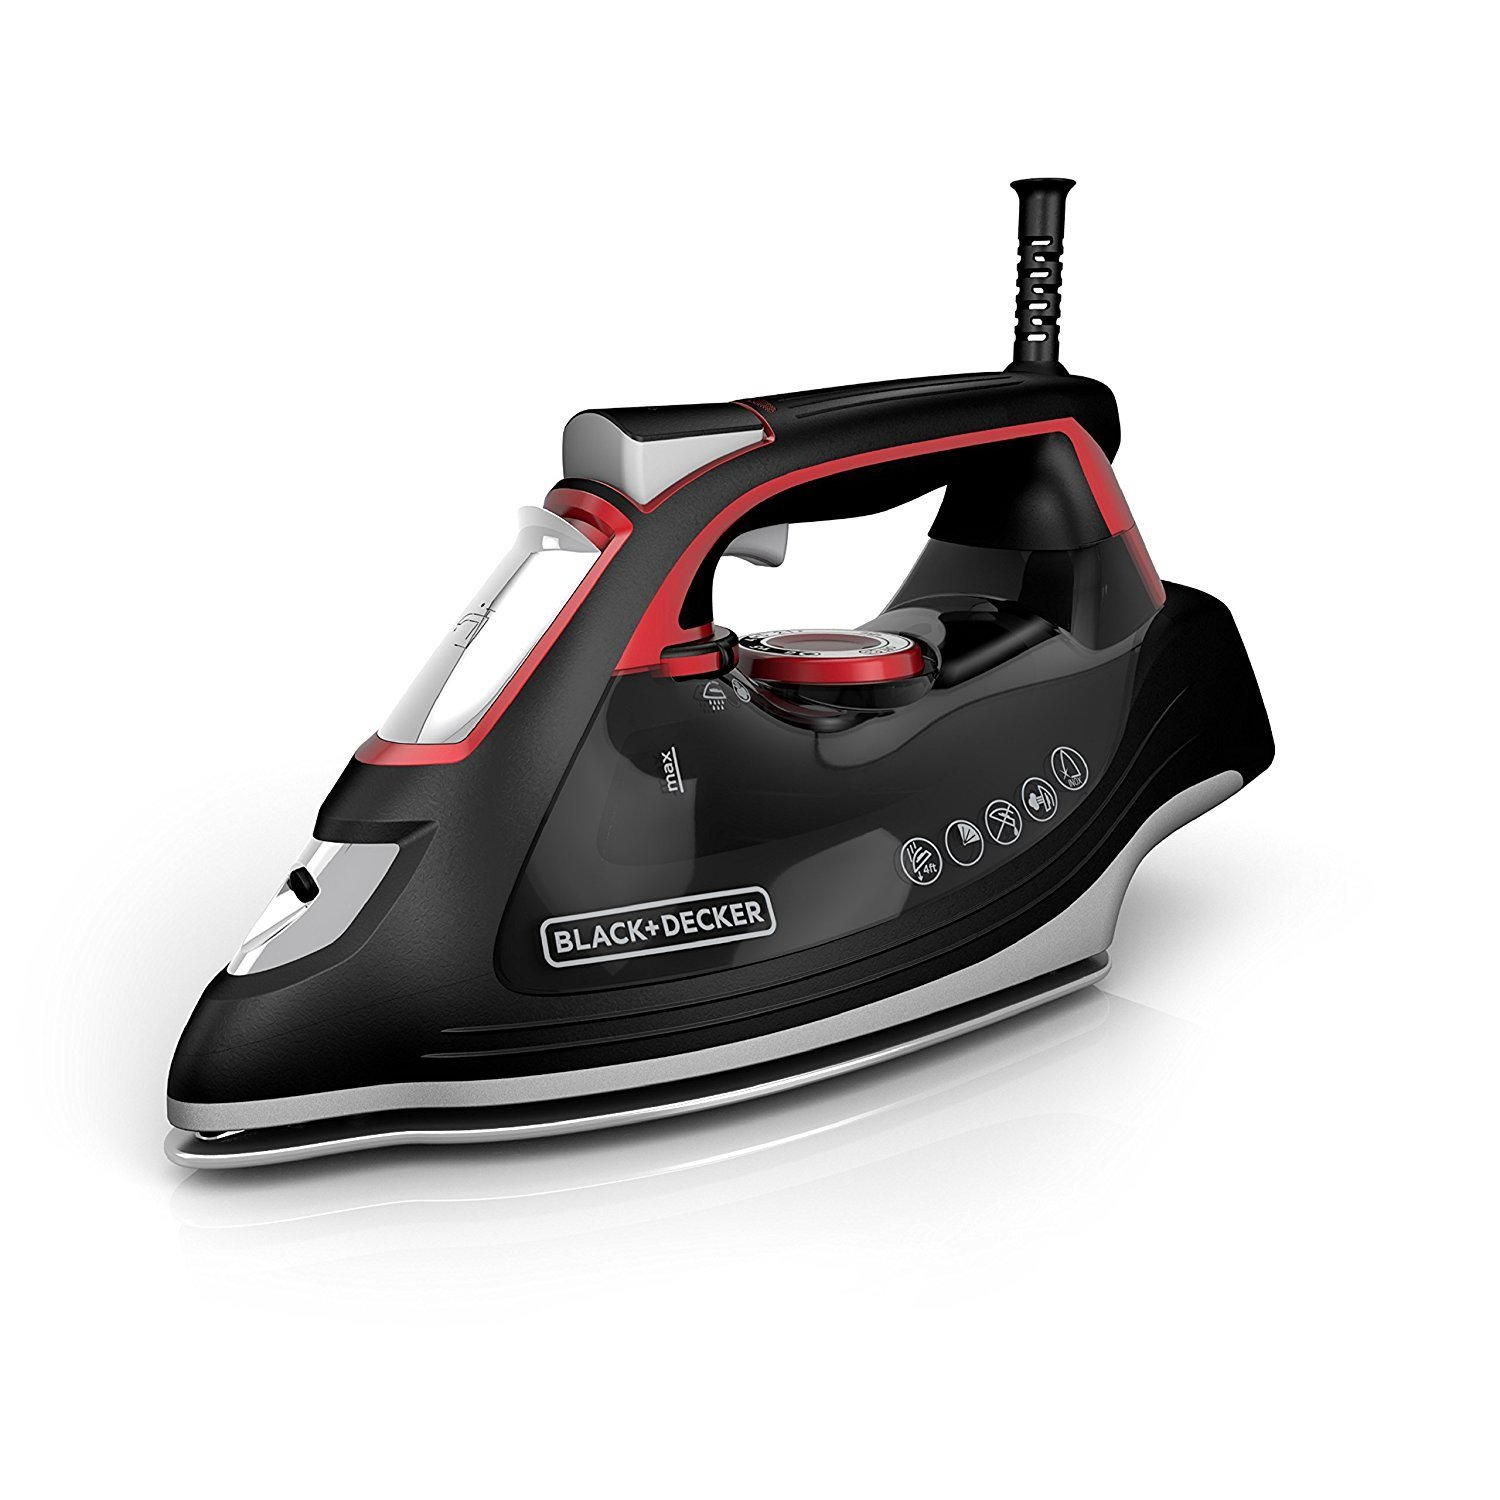 BLACK+DECKER IMPACT Advanced Steam Iron, IR3010 Black & Decker